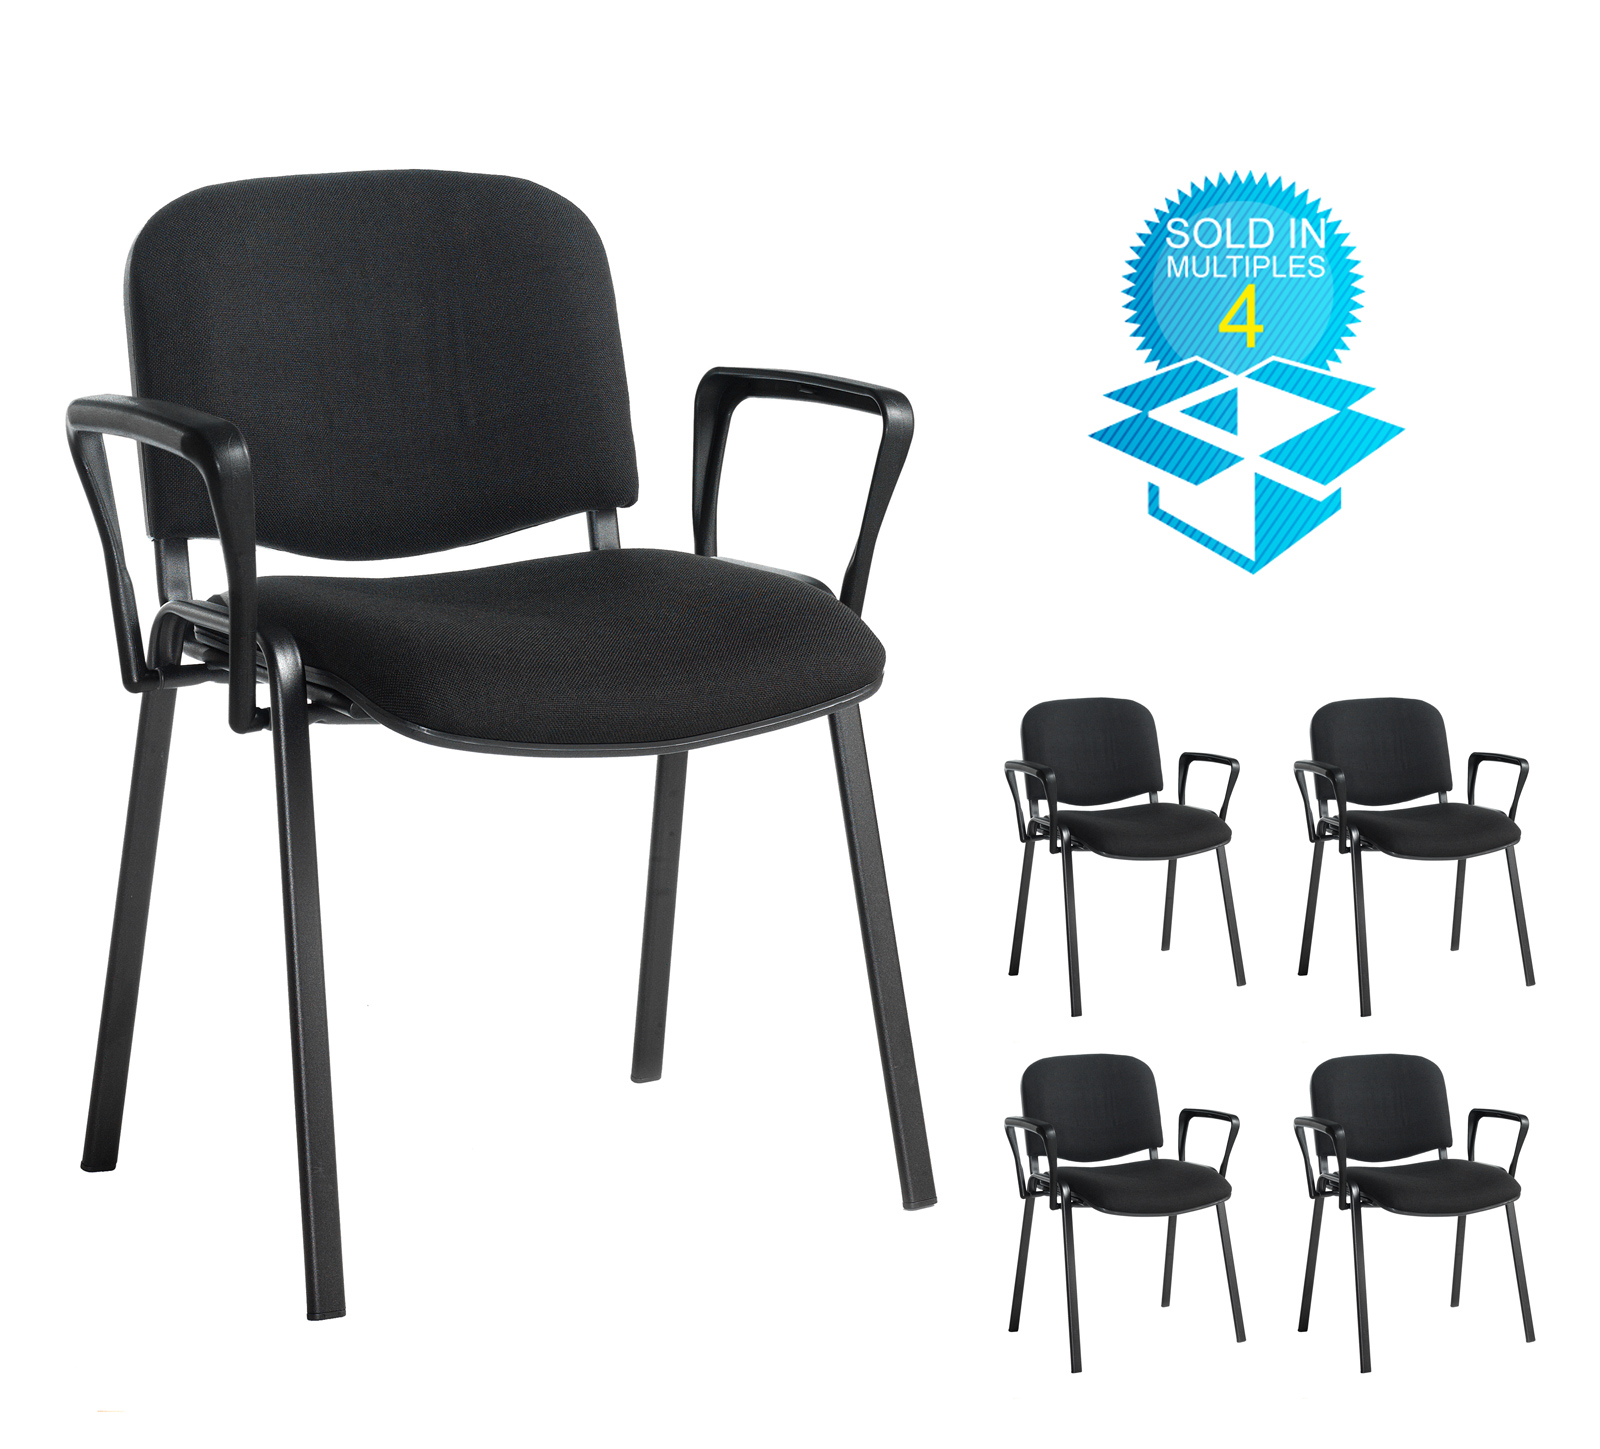 Taurus meeting room stackable chair (box of 4) with black frame and fixed arms - charcoal